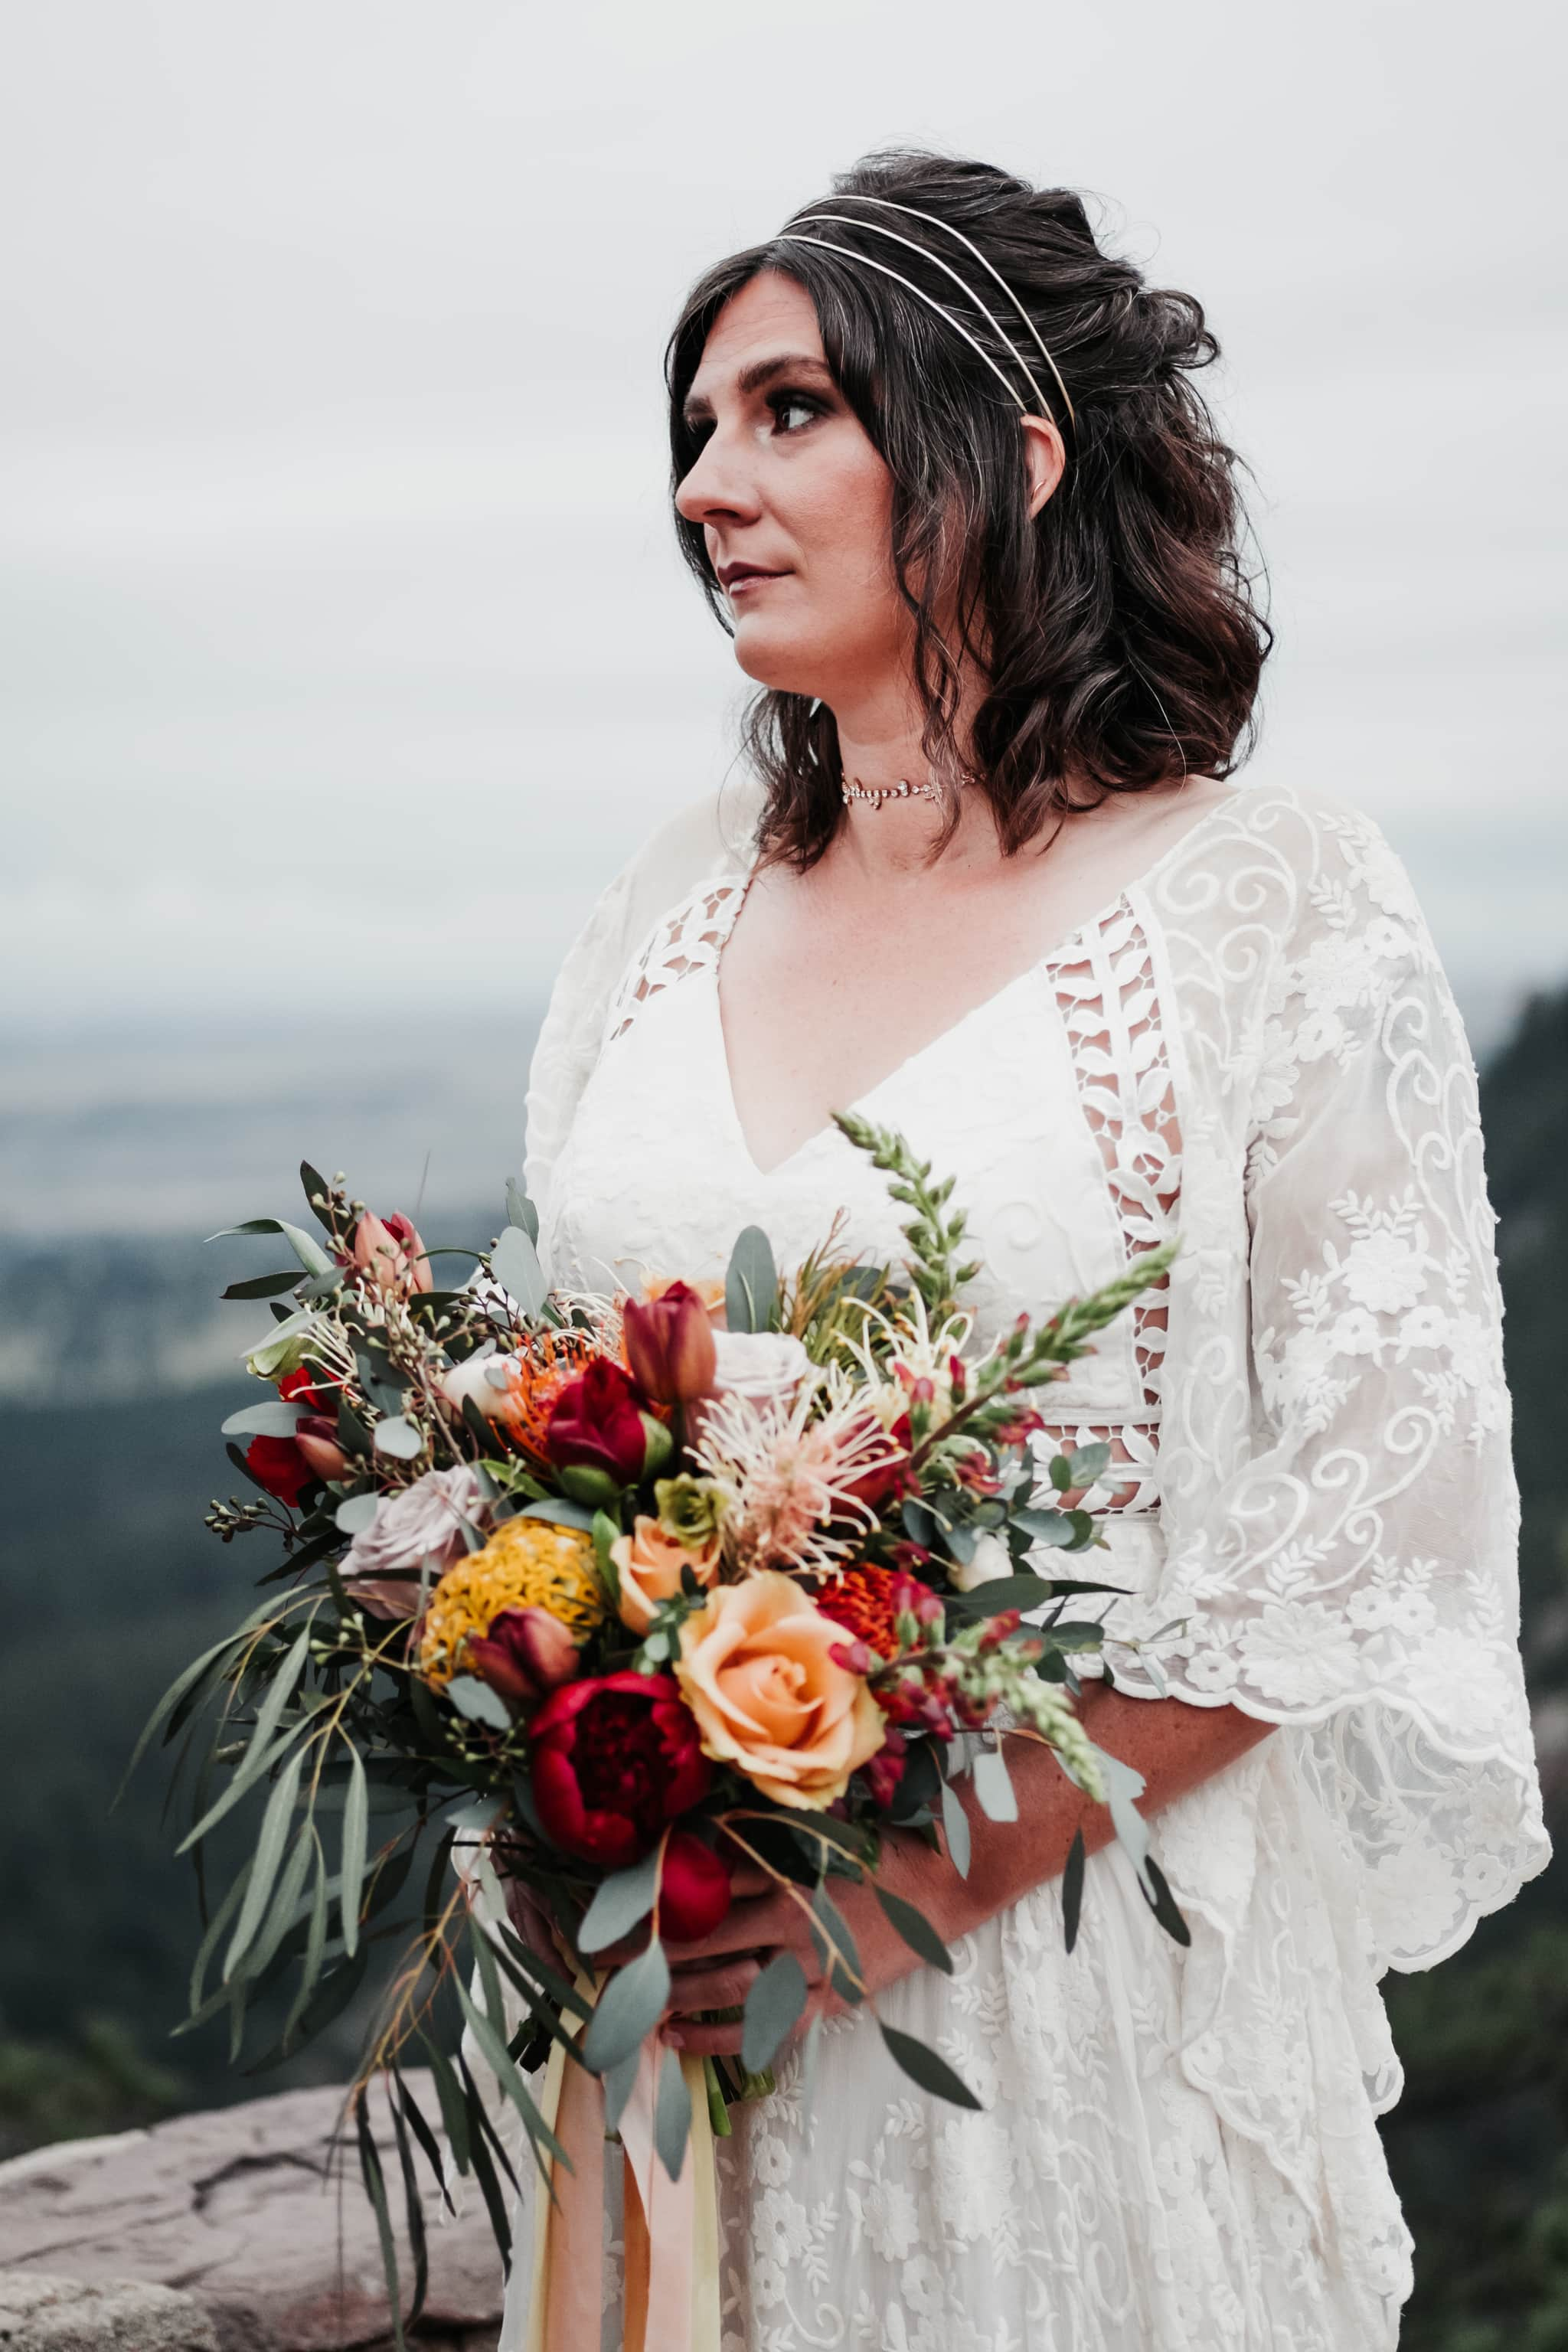 Sunrise Amphitheater Elopement, Flagstaff Boulder Colorado wedding photographer, bouquet by Fawns Leap, dress by Rue De Seine Bridal